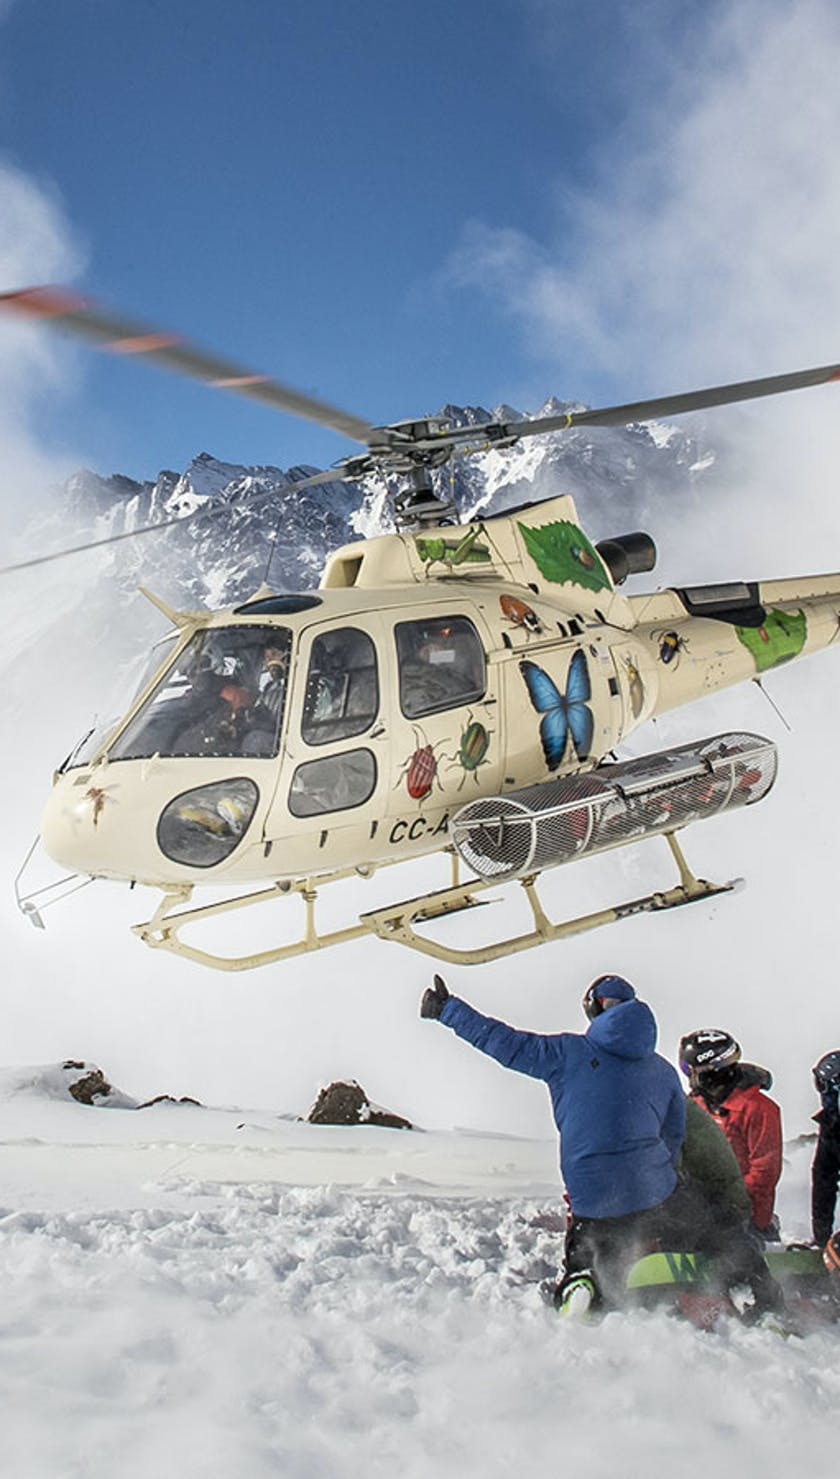 Skiers and helicopter